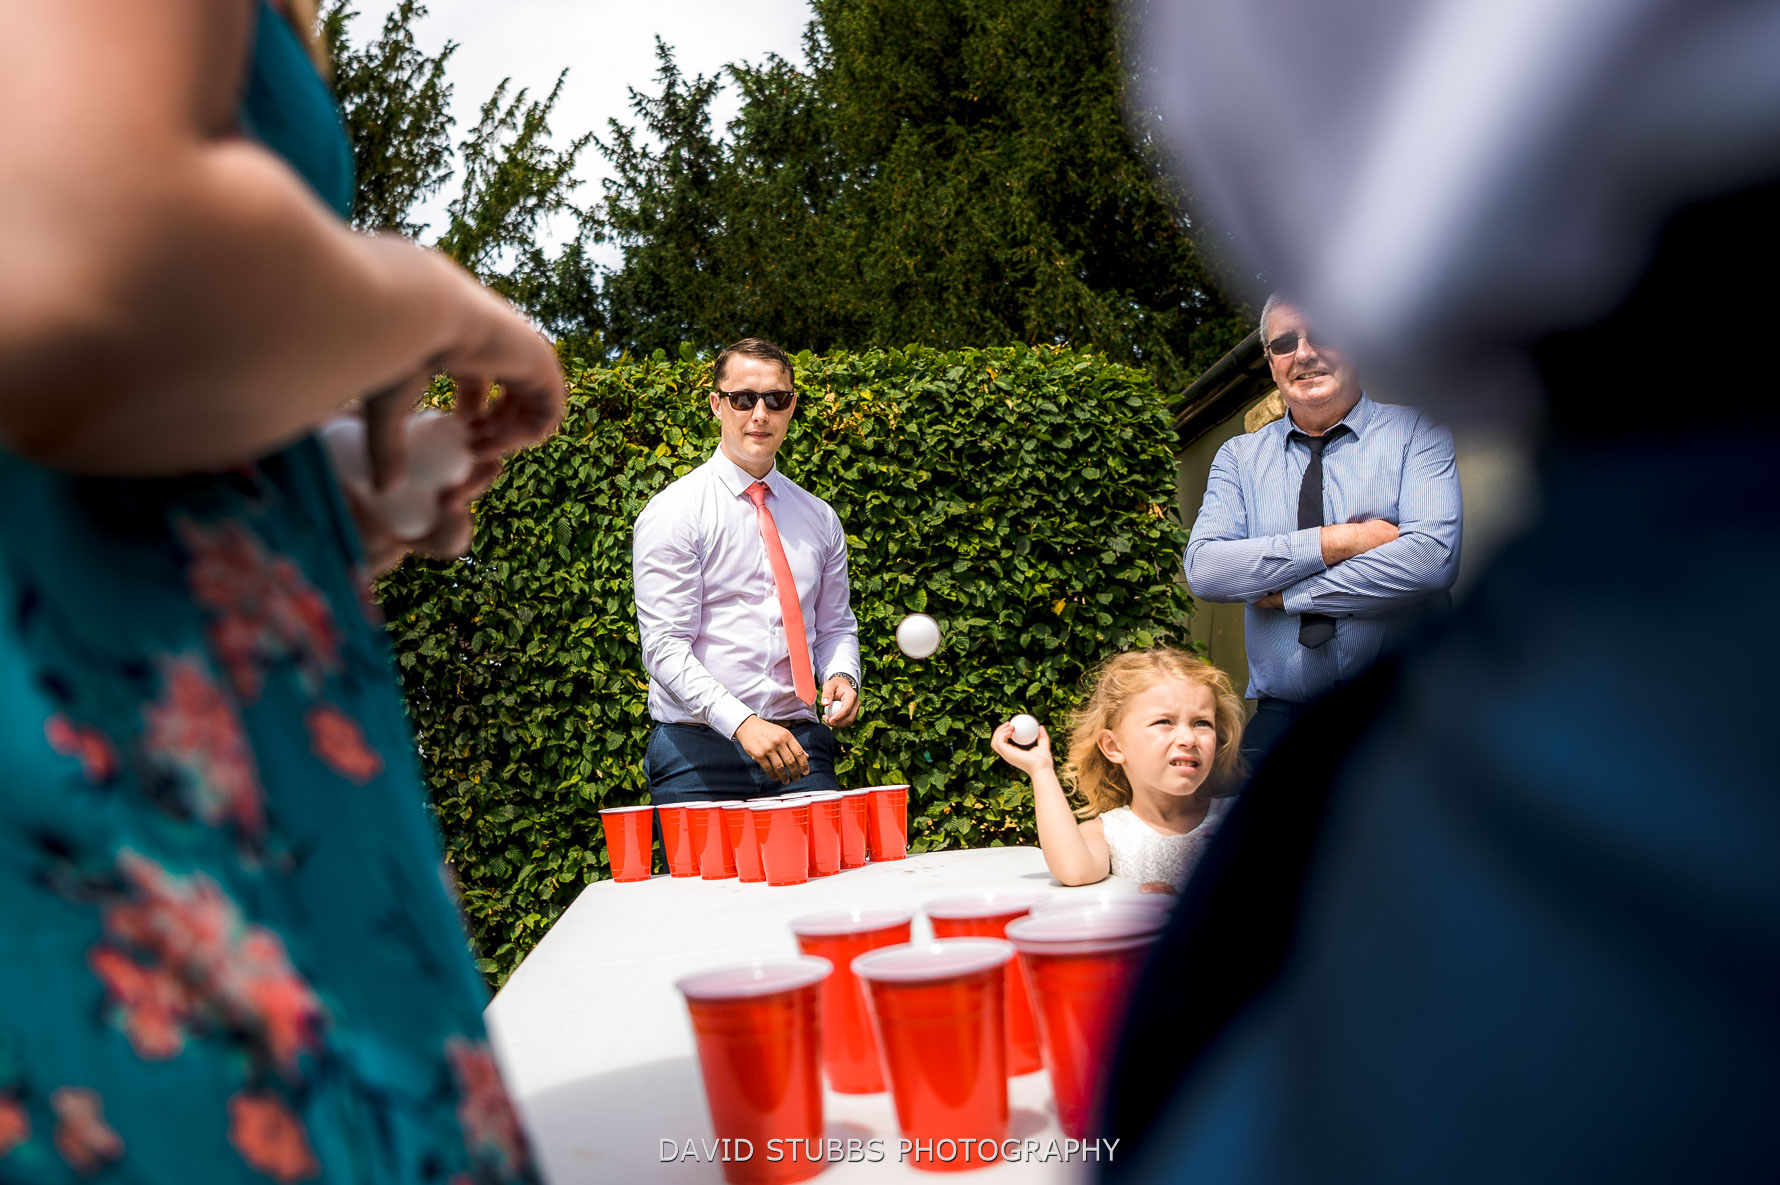 beer pong match with warm beer